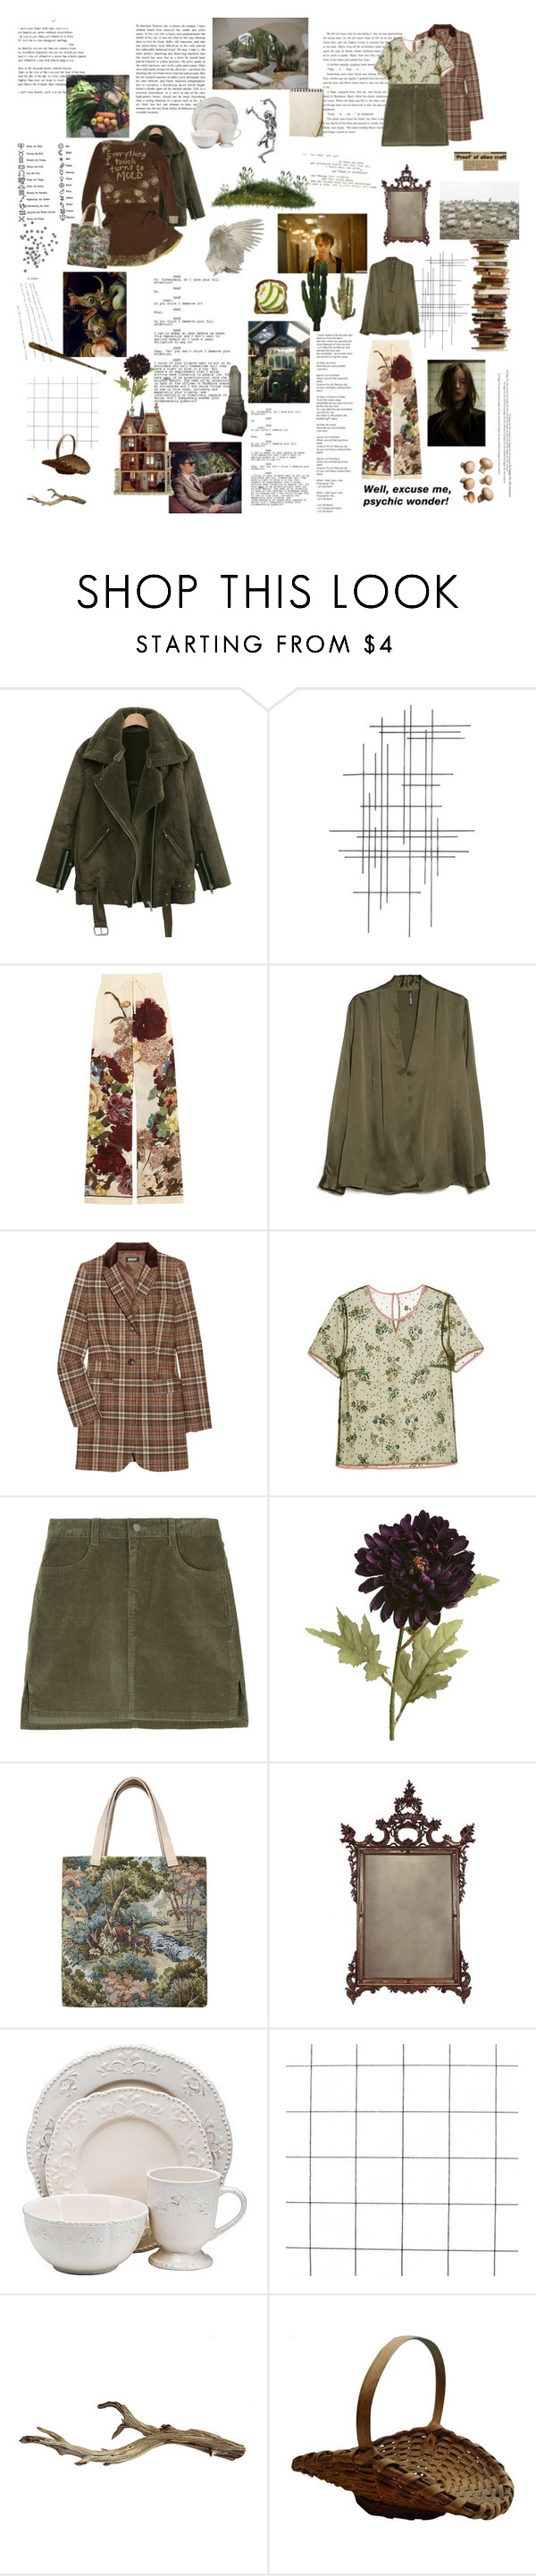 """""""Me myself and I"""" by the-clary-project ❤ liked on Polyvore featuring Crate and Barrel, Valentino, MANGO, DKNY, Mary Katrantzou, Pier 1 Imports, Clips, Bless and Better Homes and Gardens"""